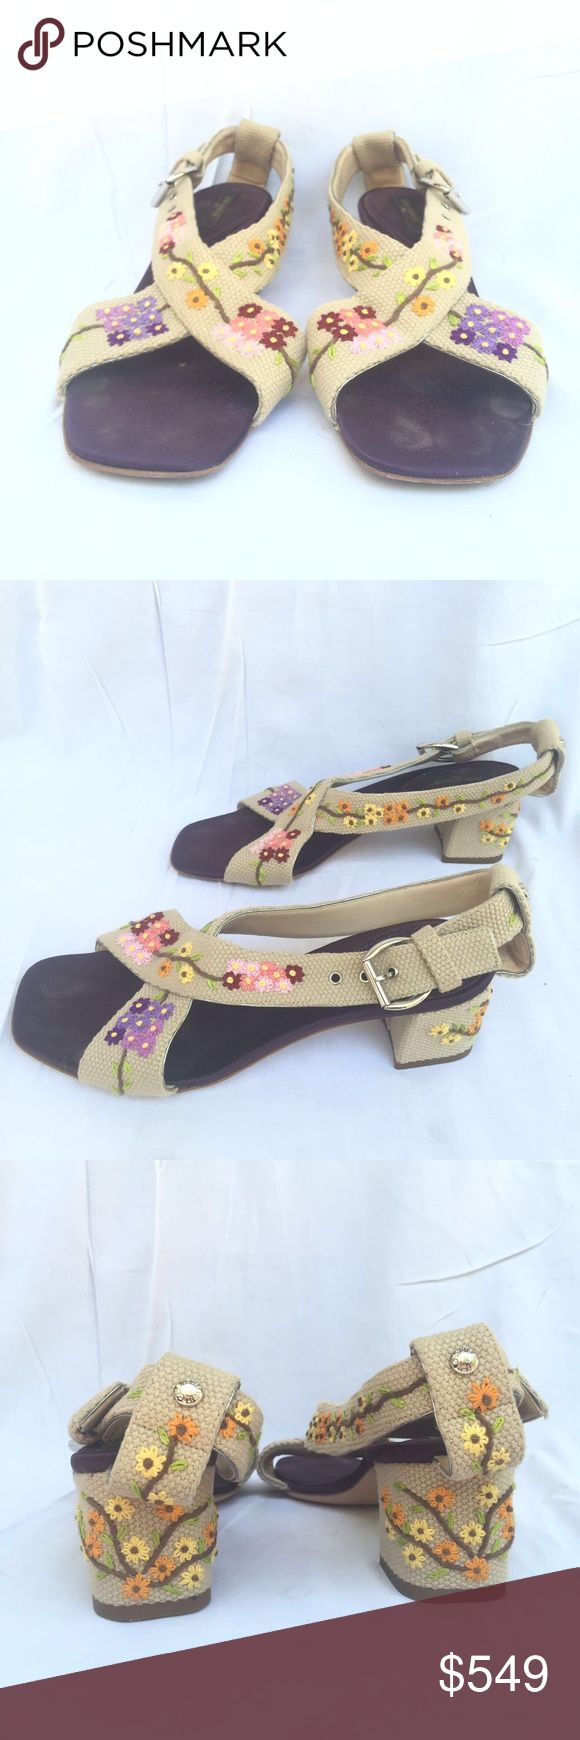 Louis Vuitton Limited Edition Women's Mules Louis Vuitton Limited Edition Women's Mules  Silk And Linen  Size EU 37 US 7 Very good condition. Look at the pictures Louis Vuitton Shoes Mules & Clogs